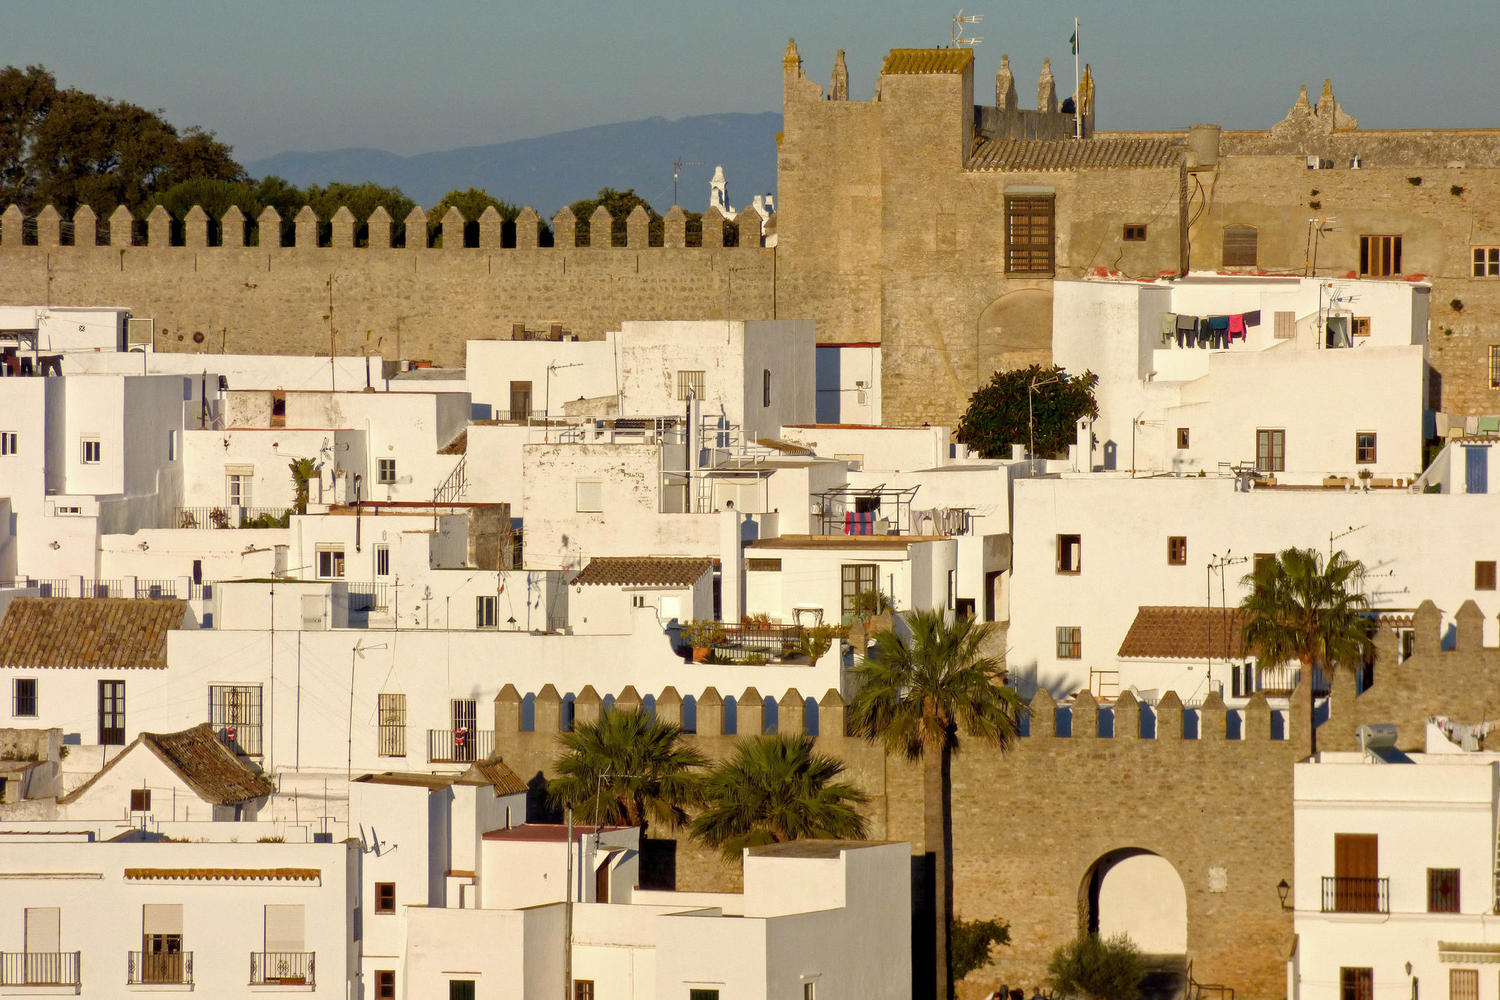 Moorish heritage in the village of Vejer de la Frontera, Cadiz